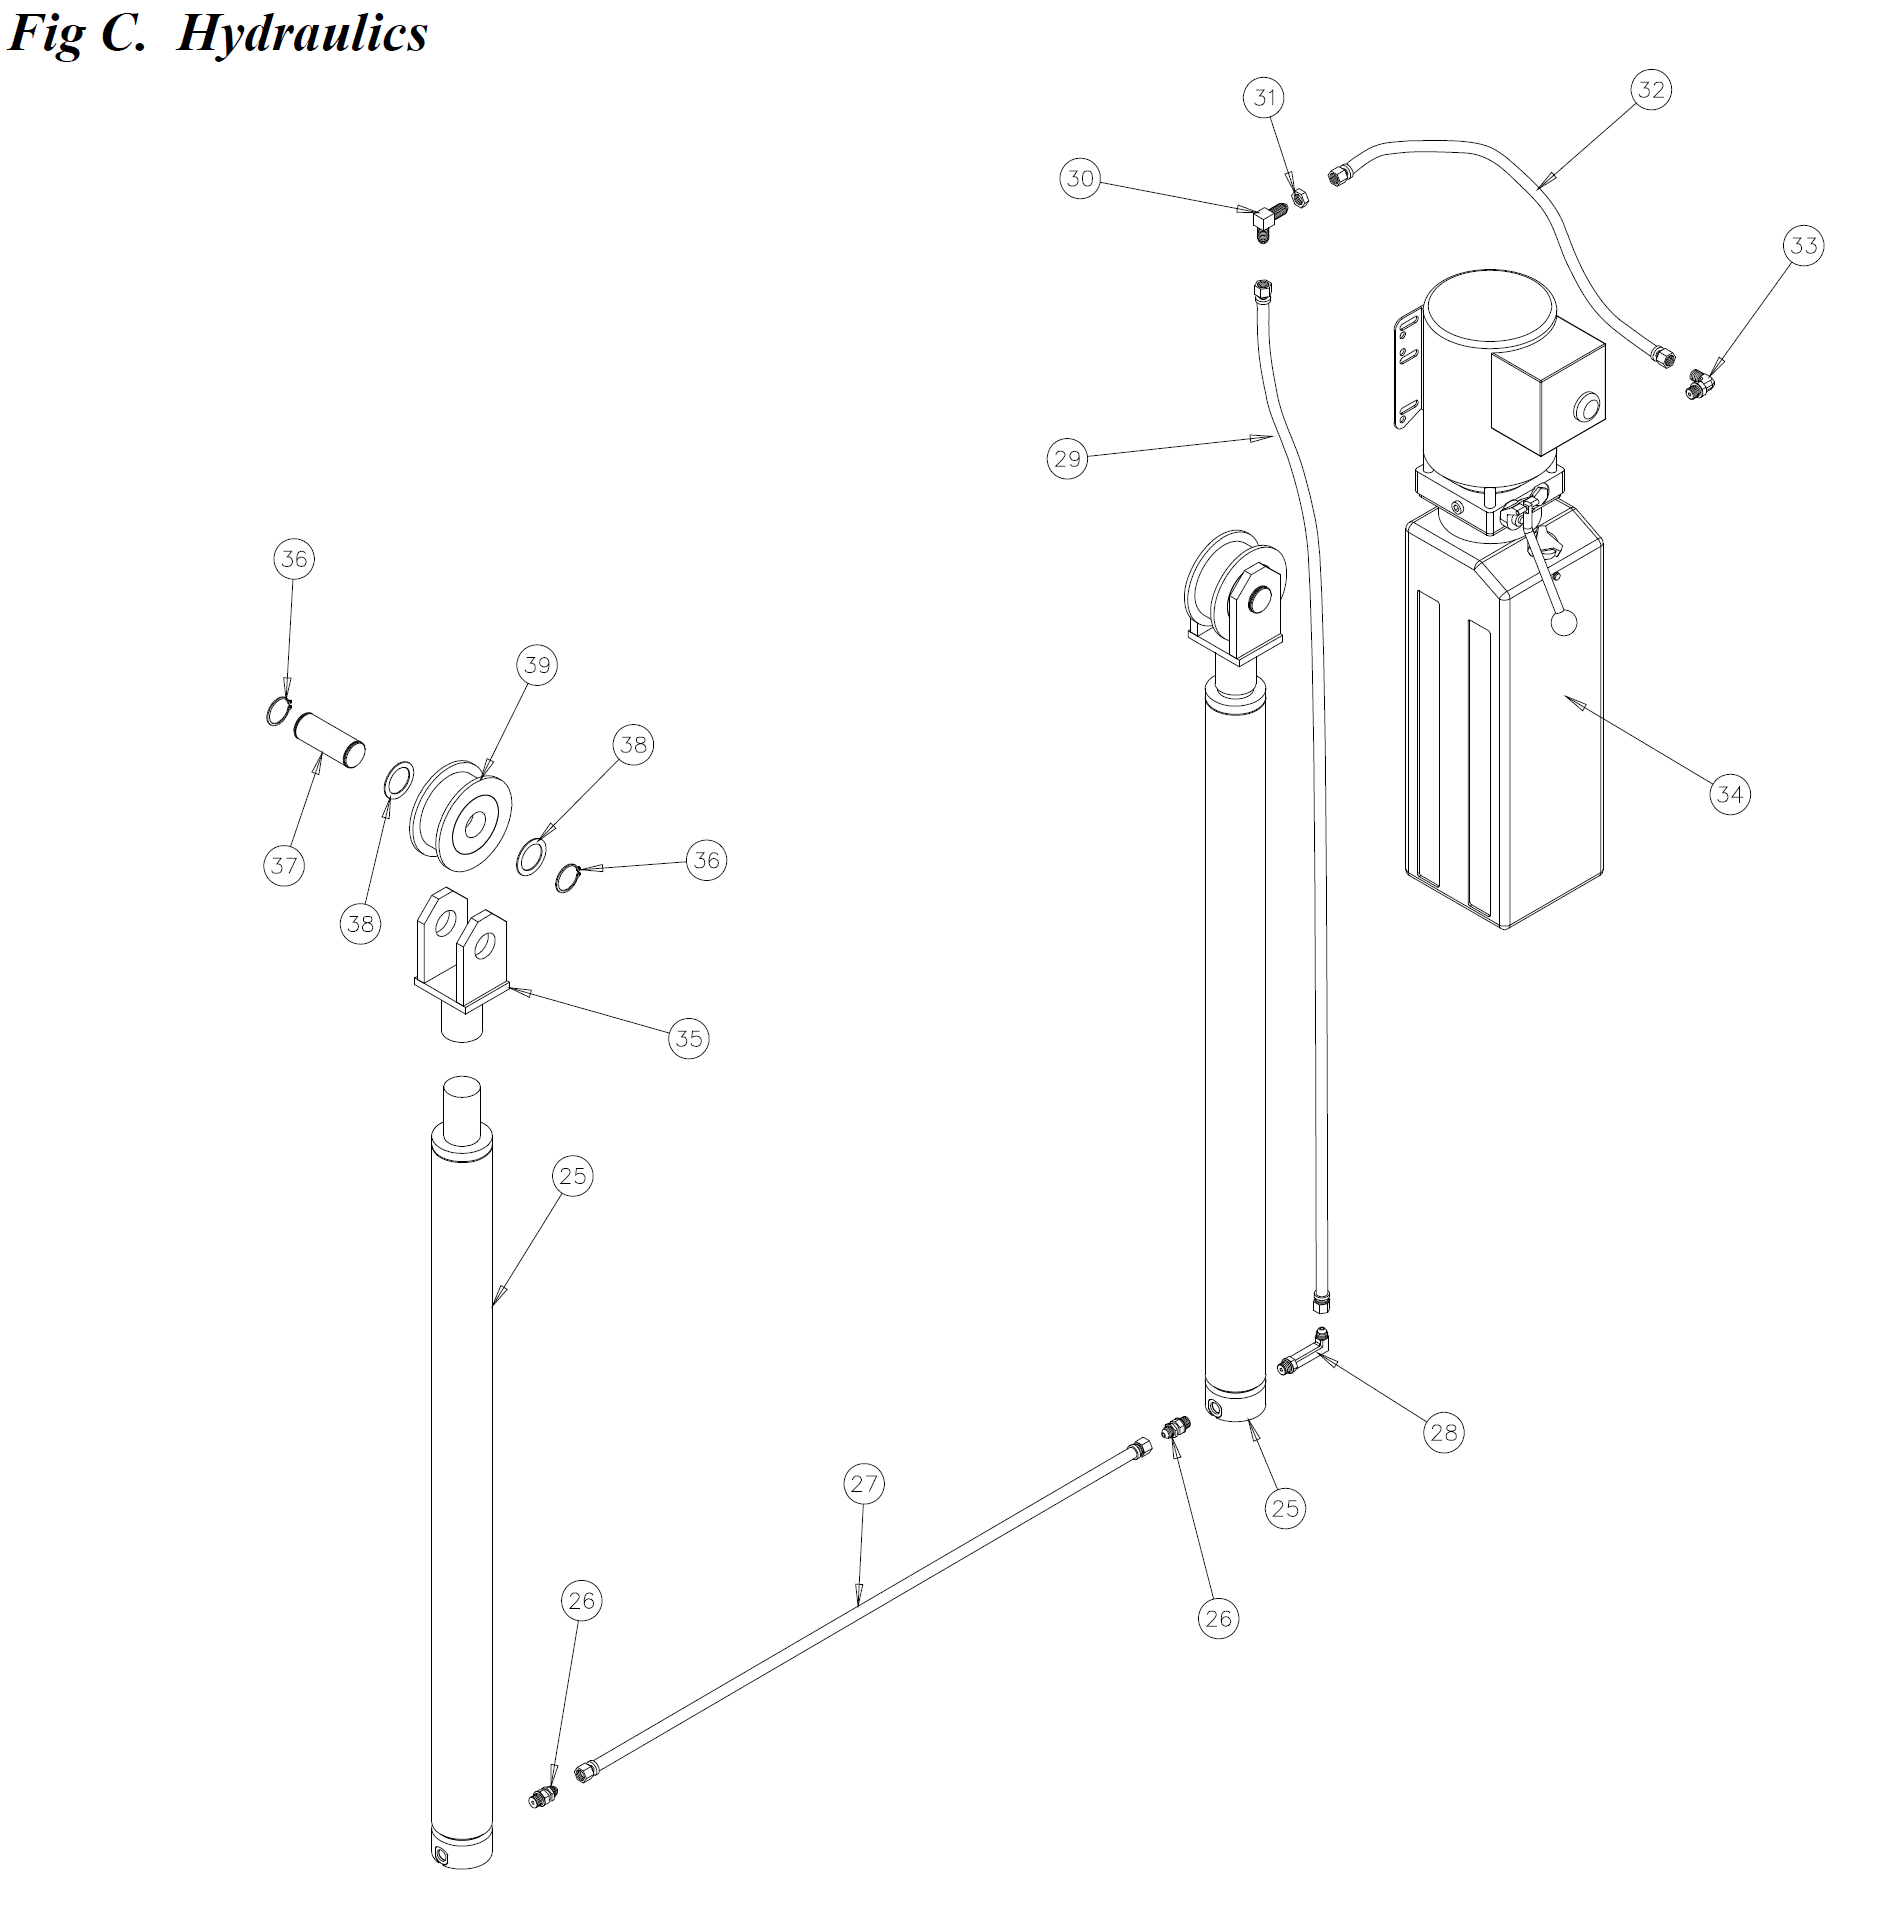 clfp9-hydraulic-diagram.png